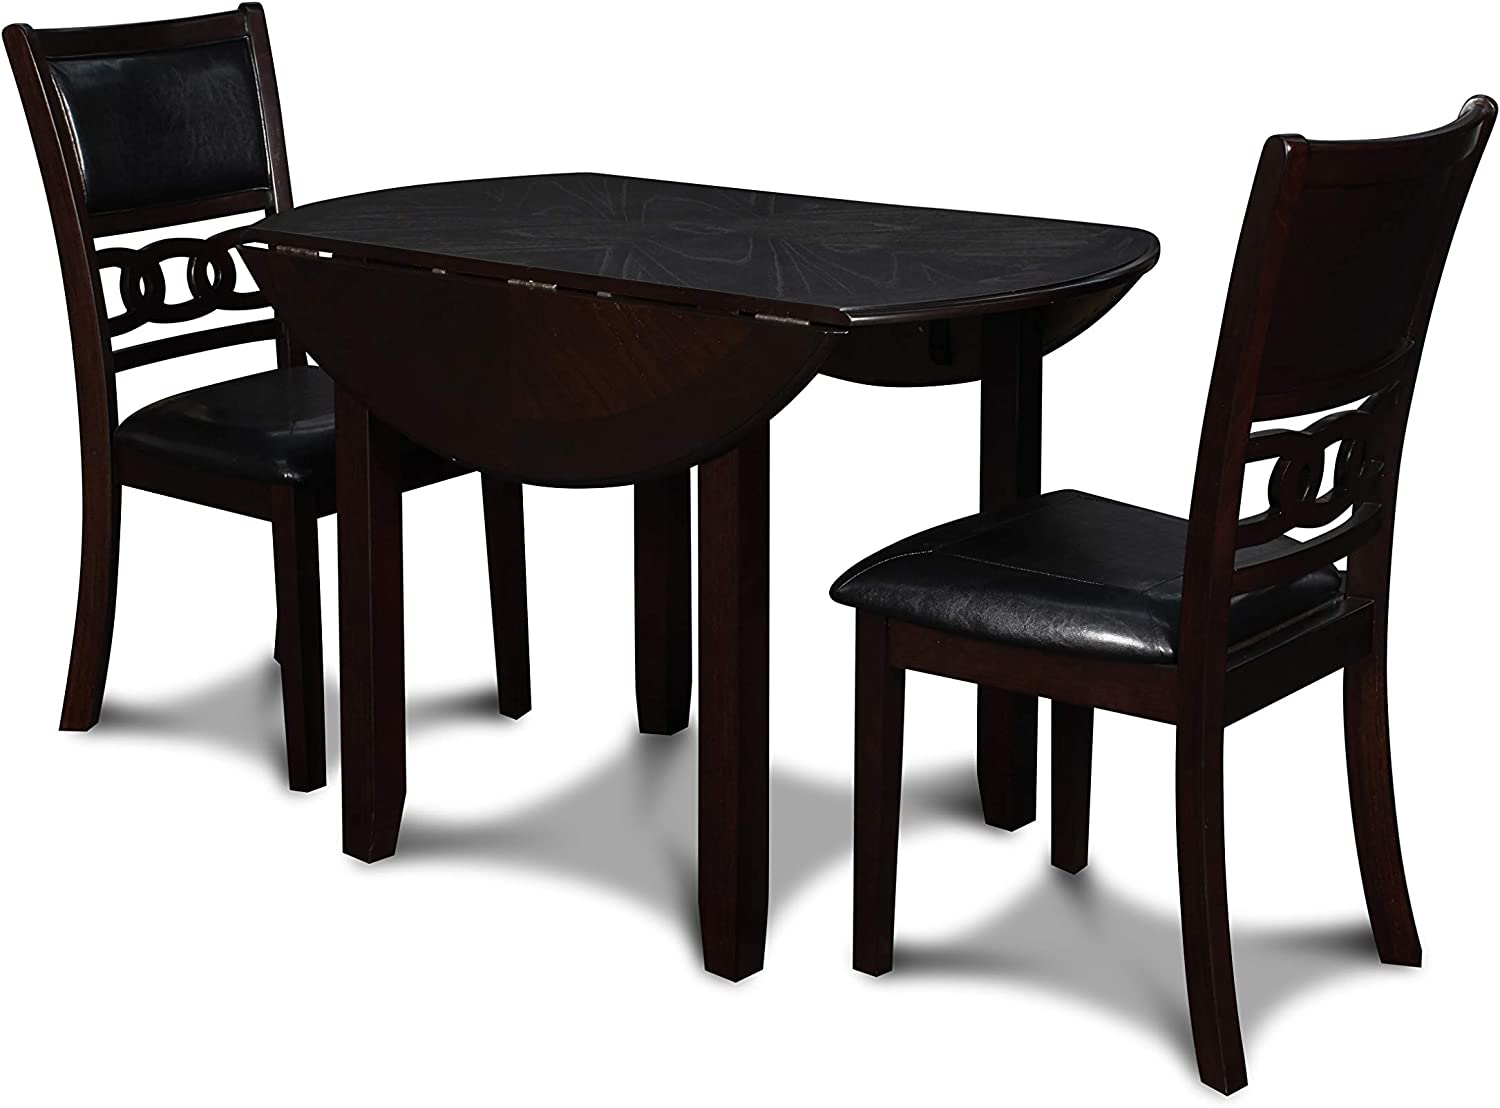 New Classic Furniture Gia Drop Leaf Dining Table with Two Chairs, 42-Inch, Ebony